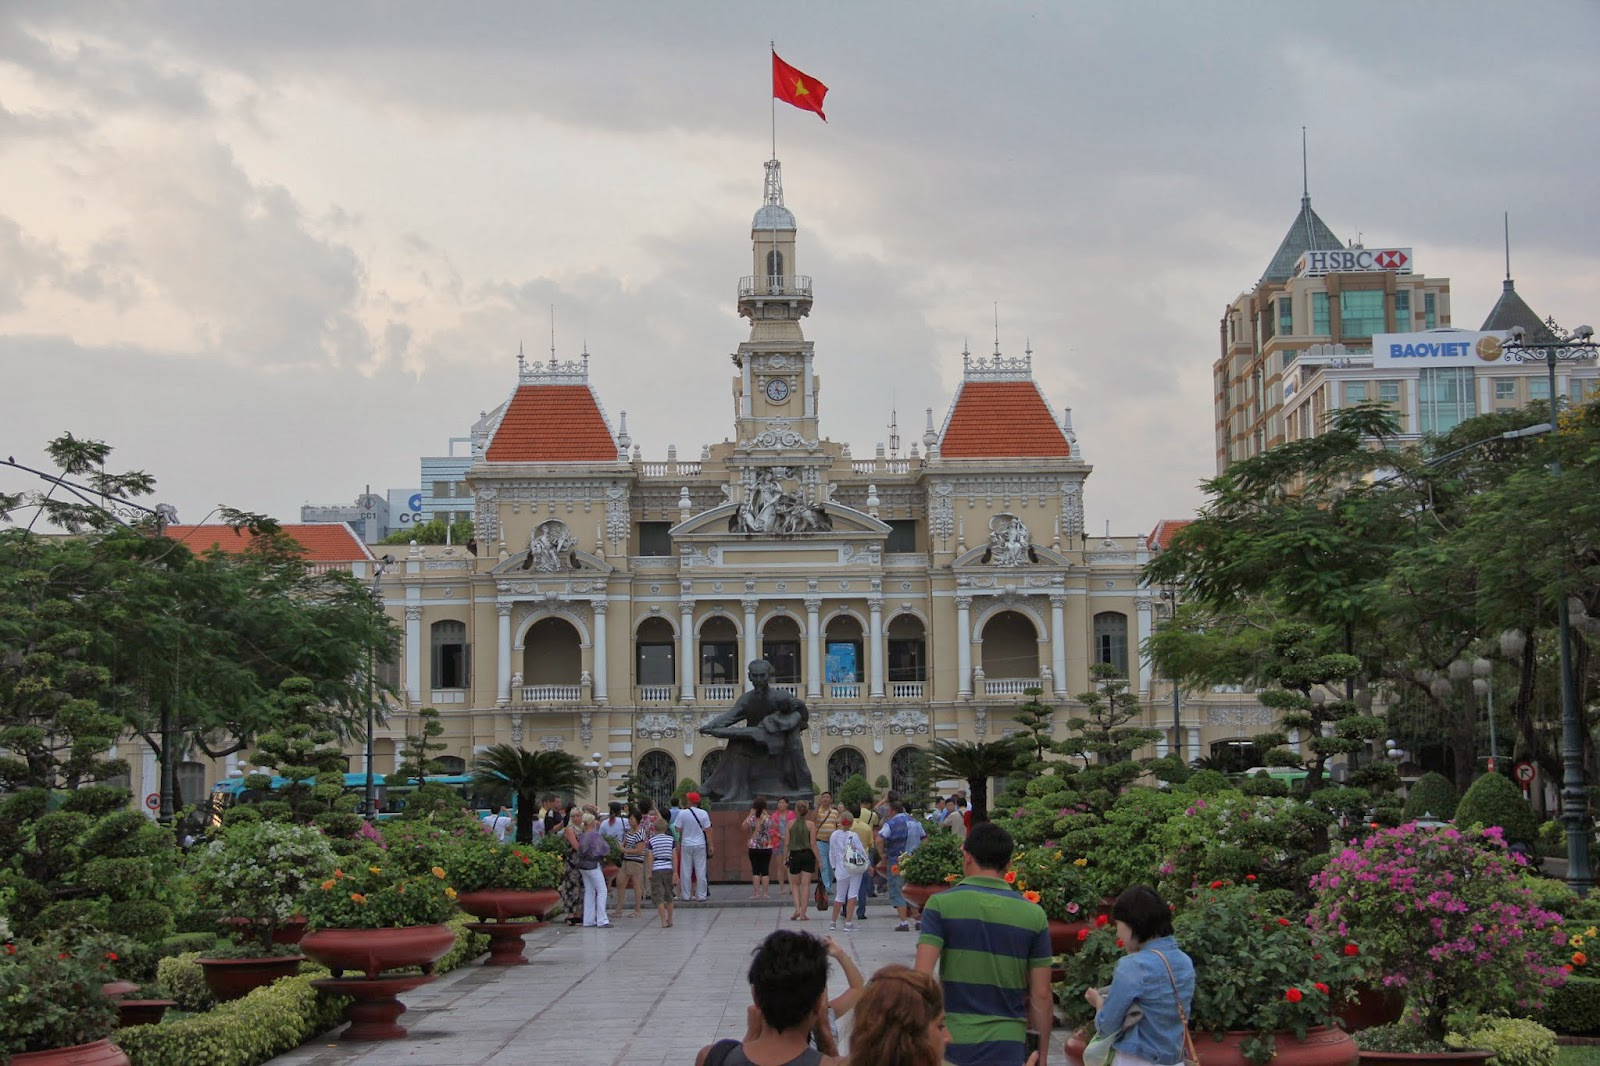 The French Colonial-style former City Hall of Saigon, built 1902-1908.